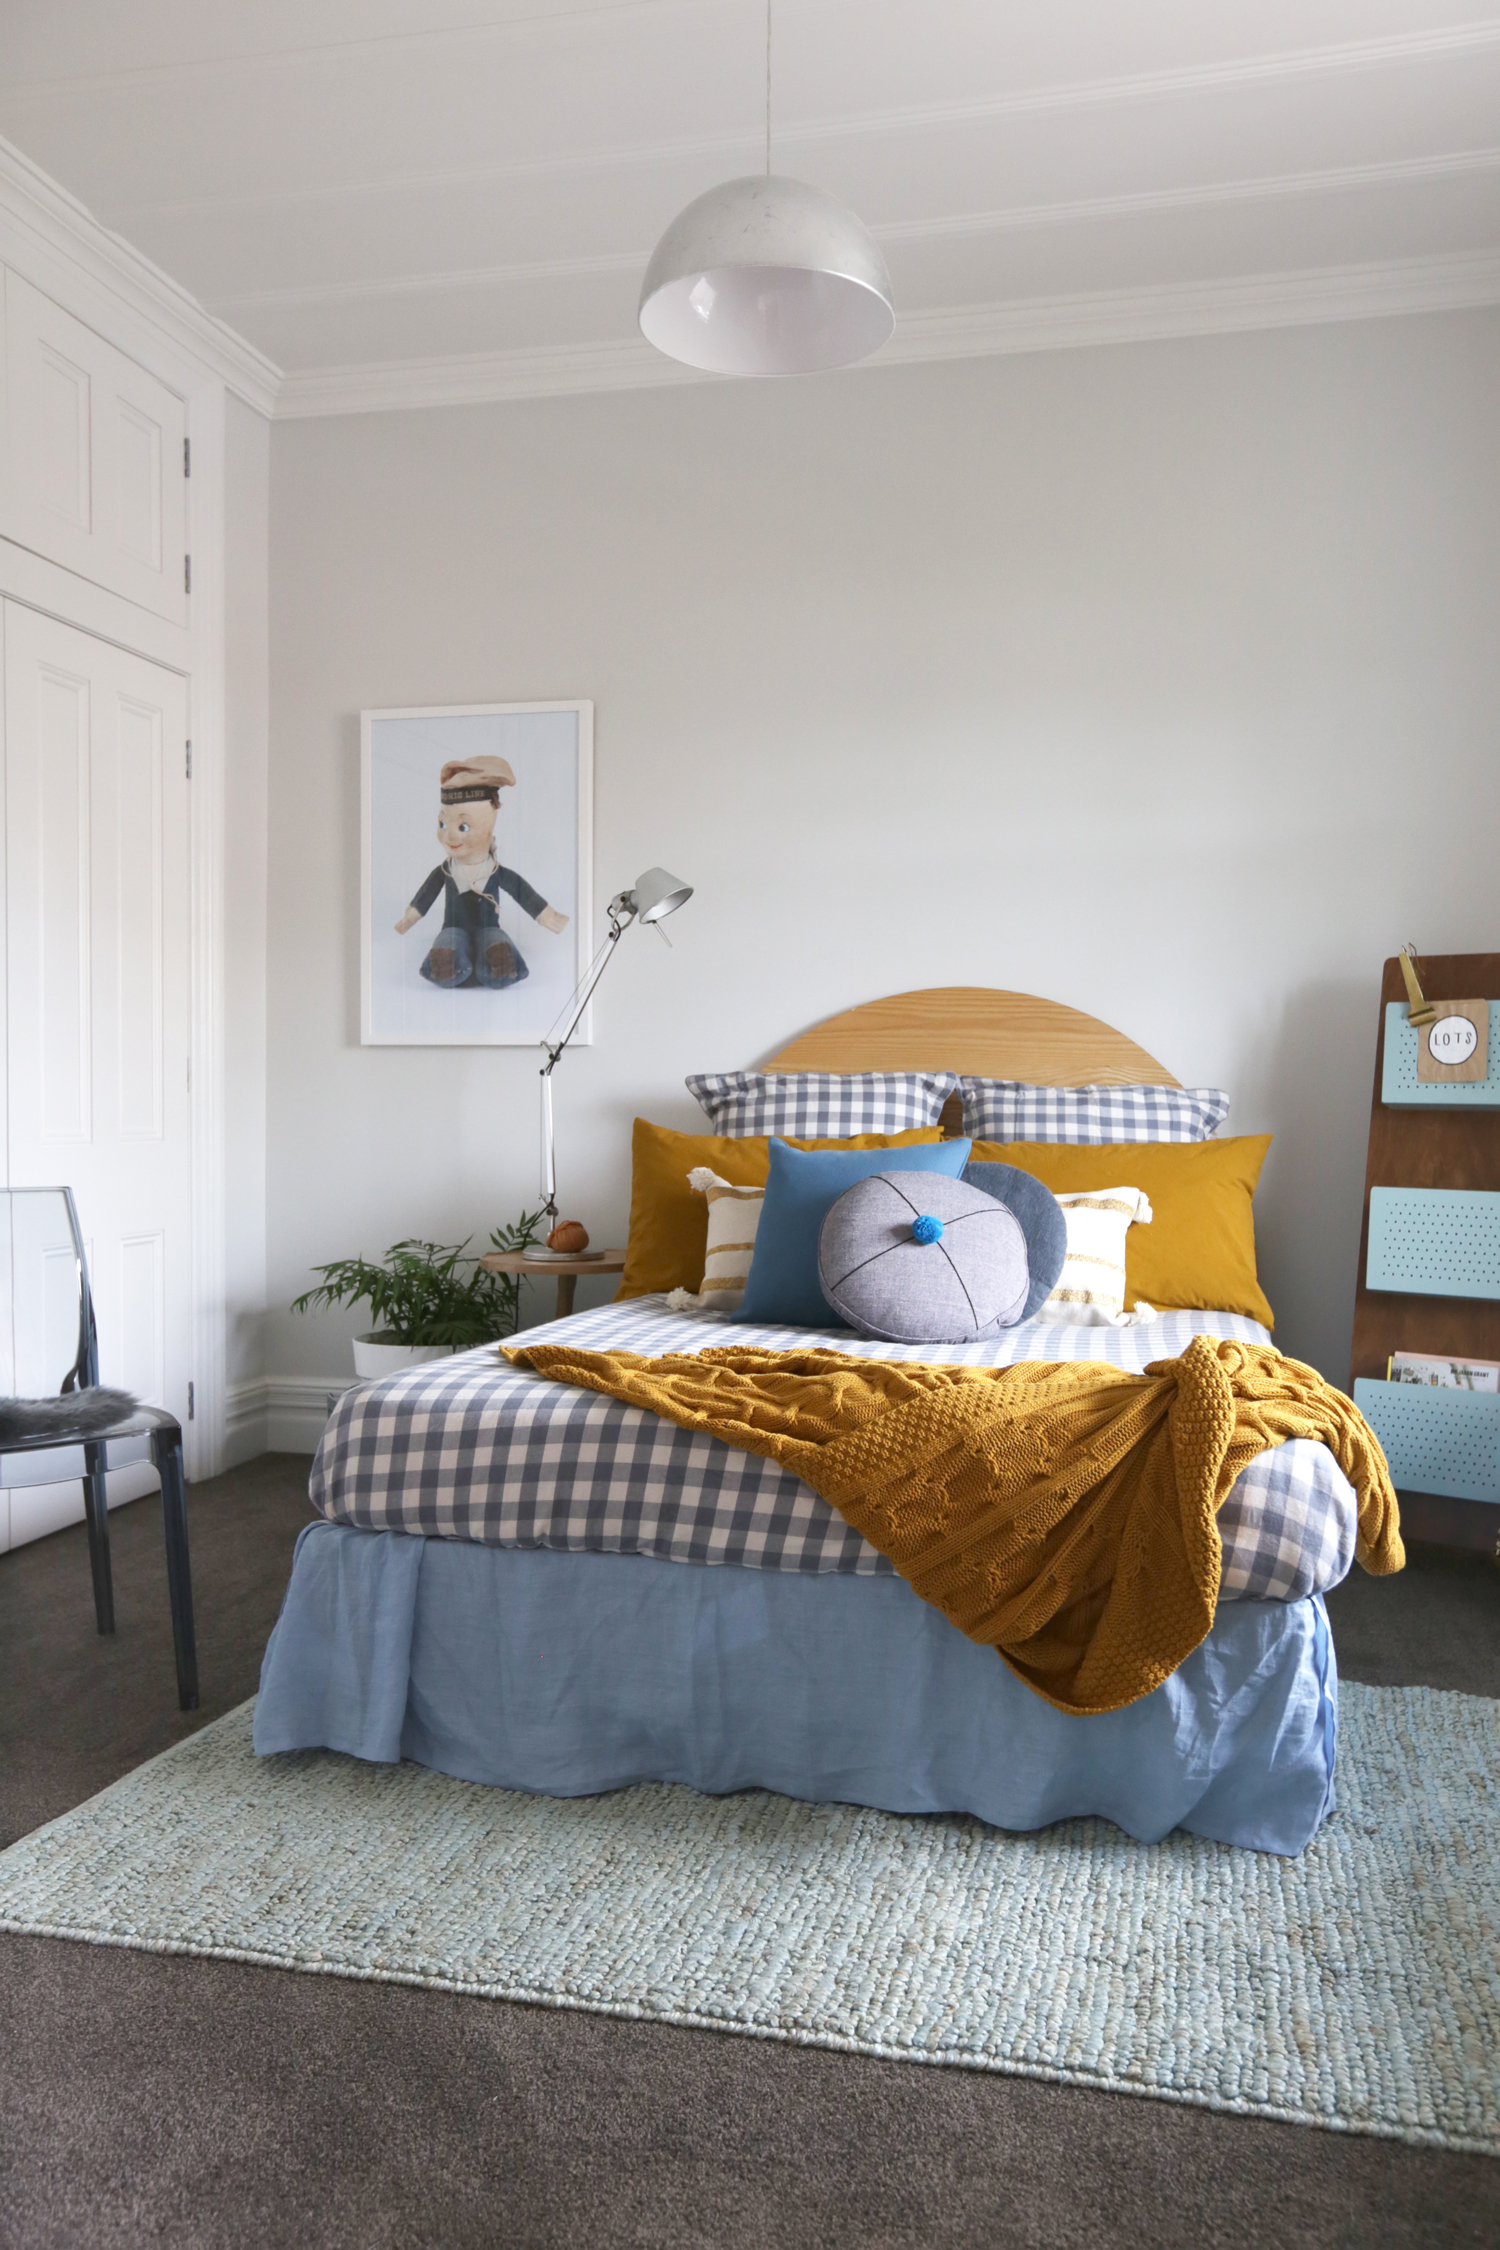 Re-create the Creative Living Spare Bedroom in your own home ...